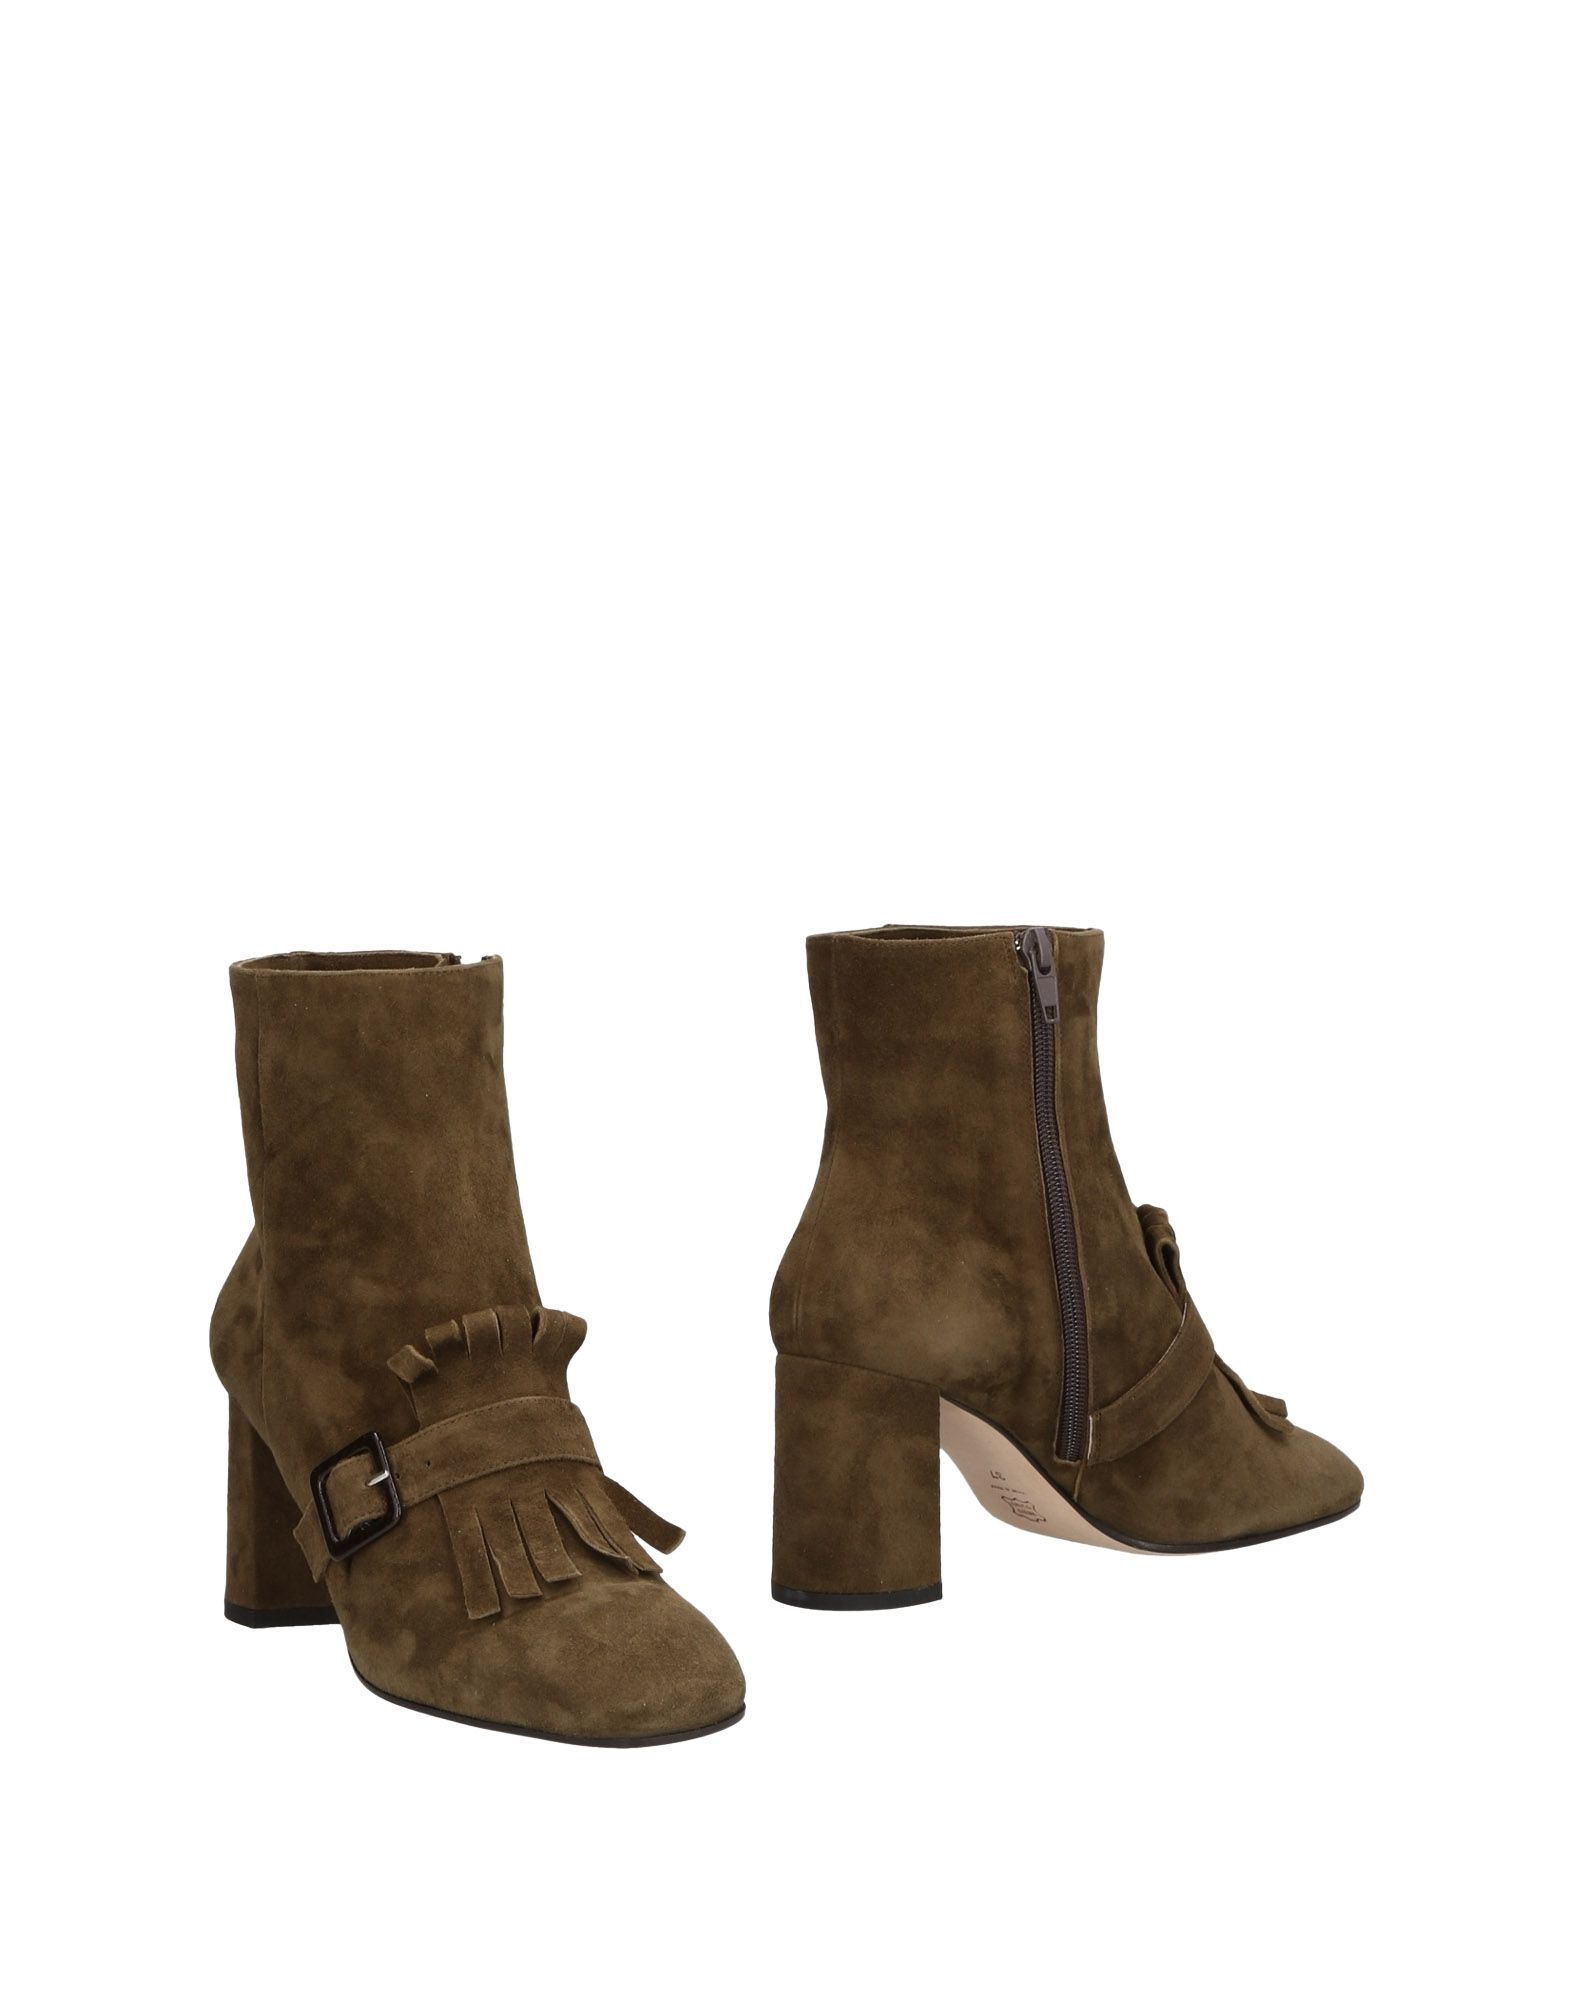 CHEVILLE Ankle Boot in Military Green